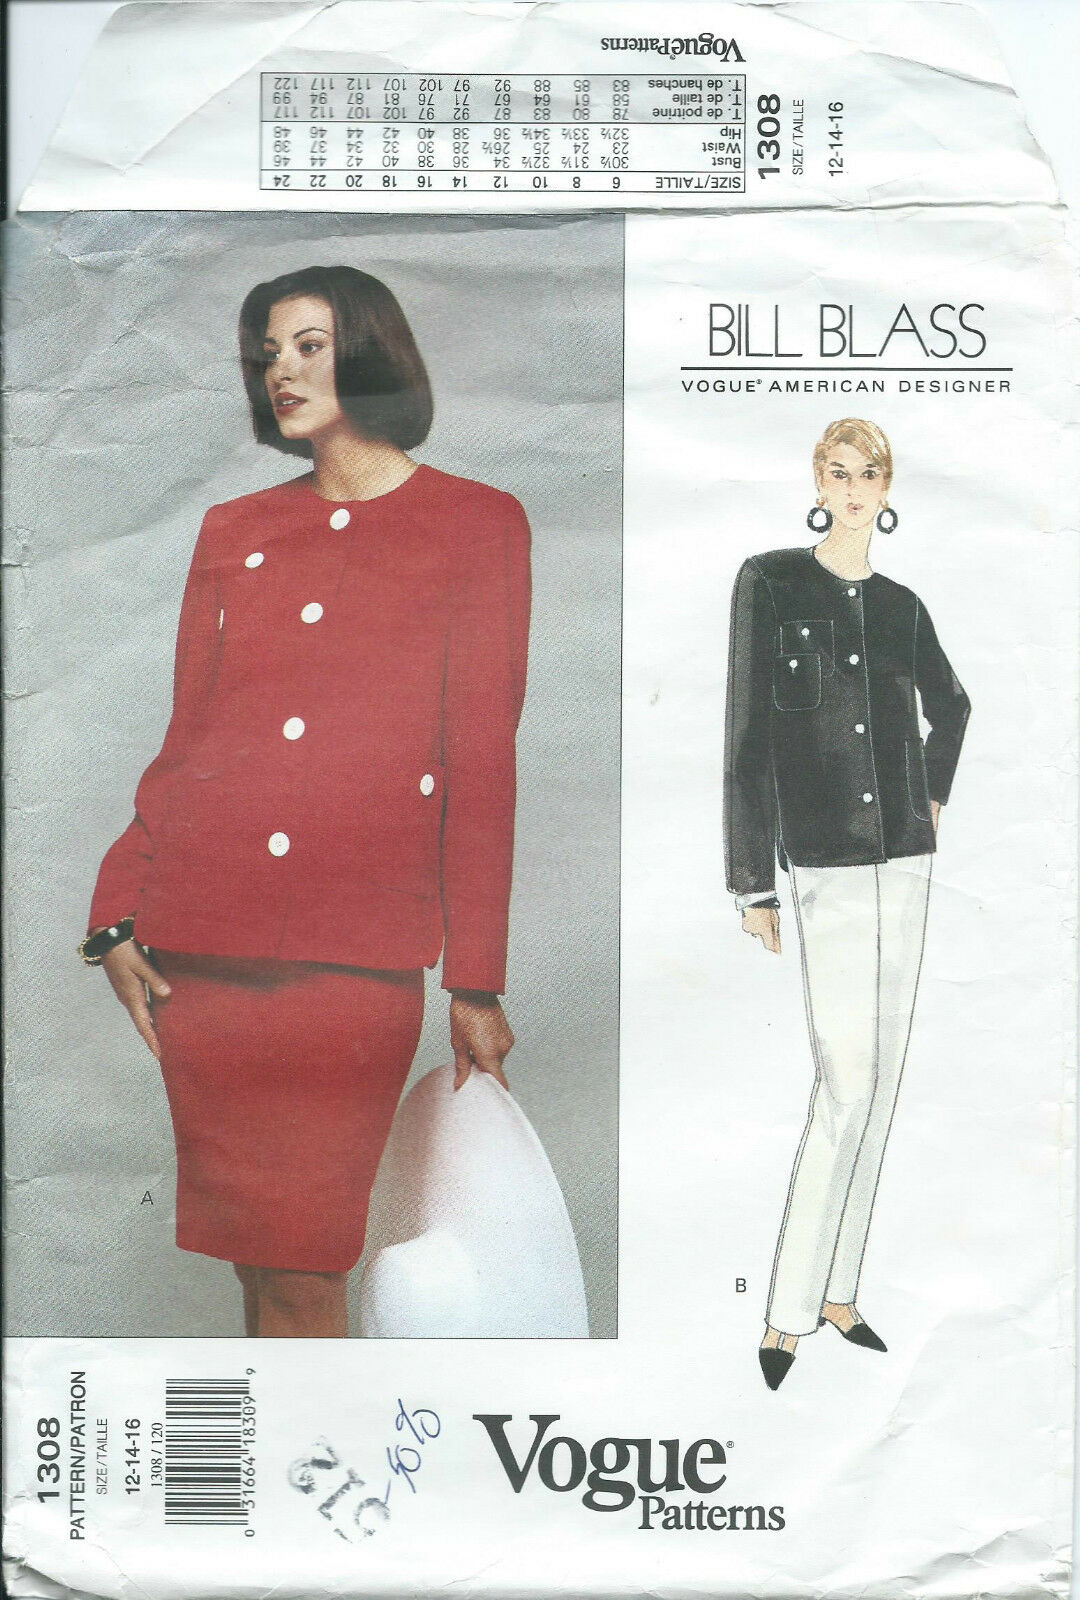 Vogue 1308 sewing pattern chic jacket skirt pants sew bill blass vogue 1308 sewing pattern chic jacket skirt pants sew bill blass design 12 14 jeuxipadfo Gallery